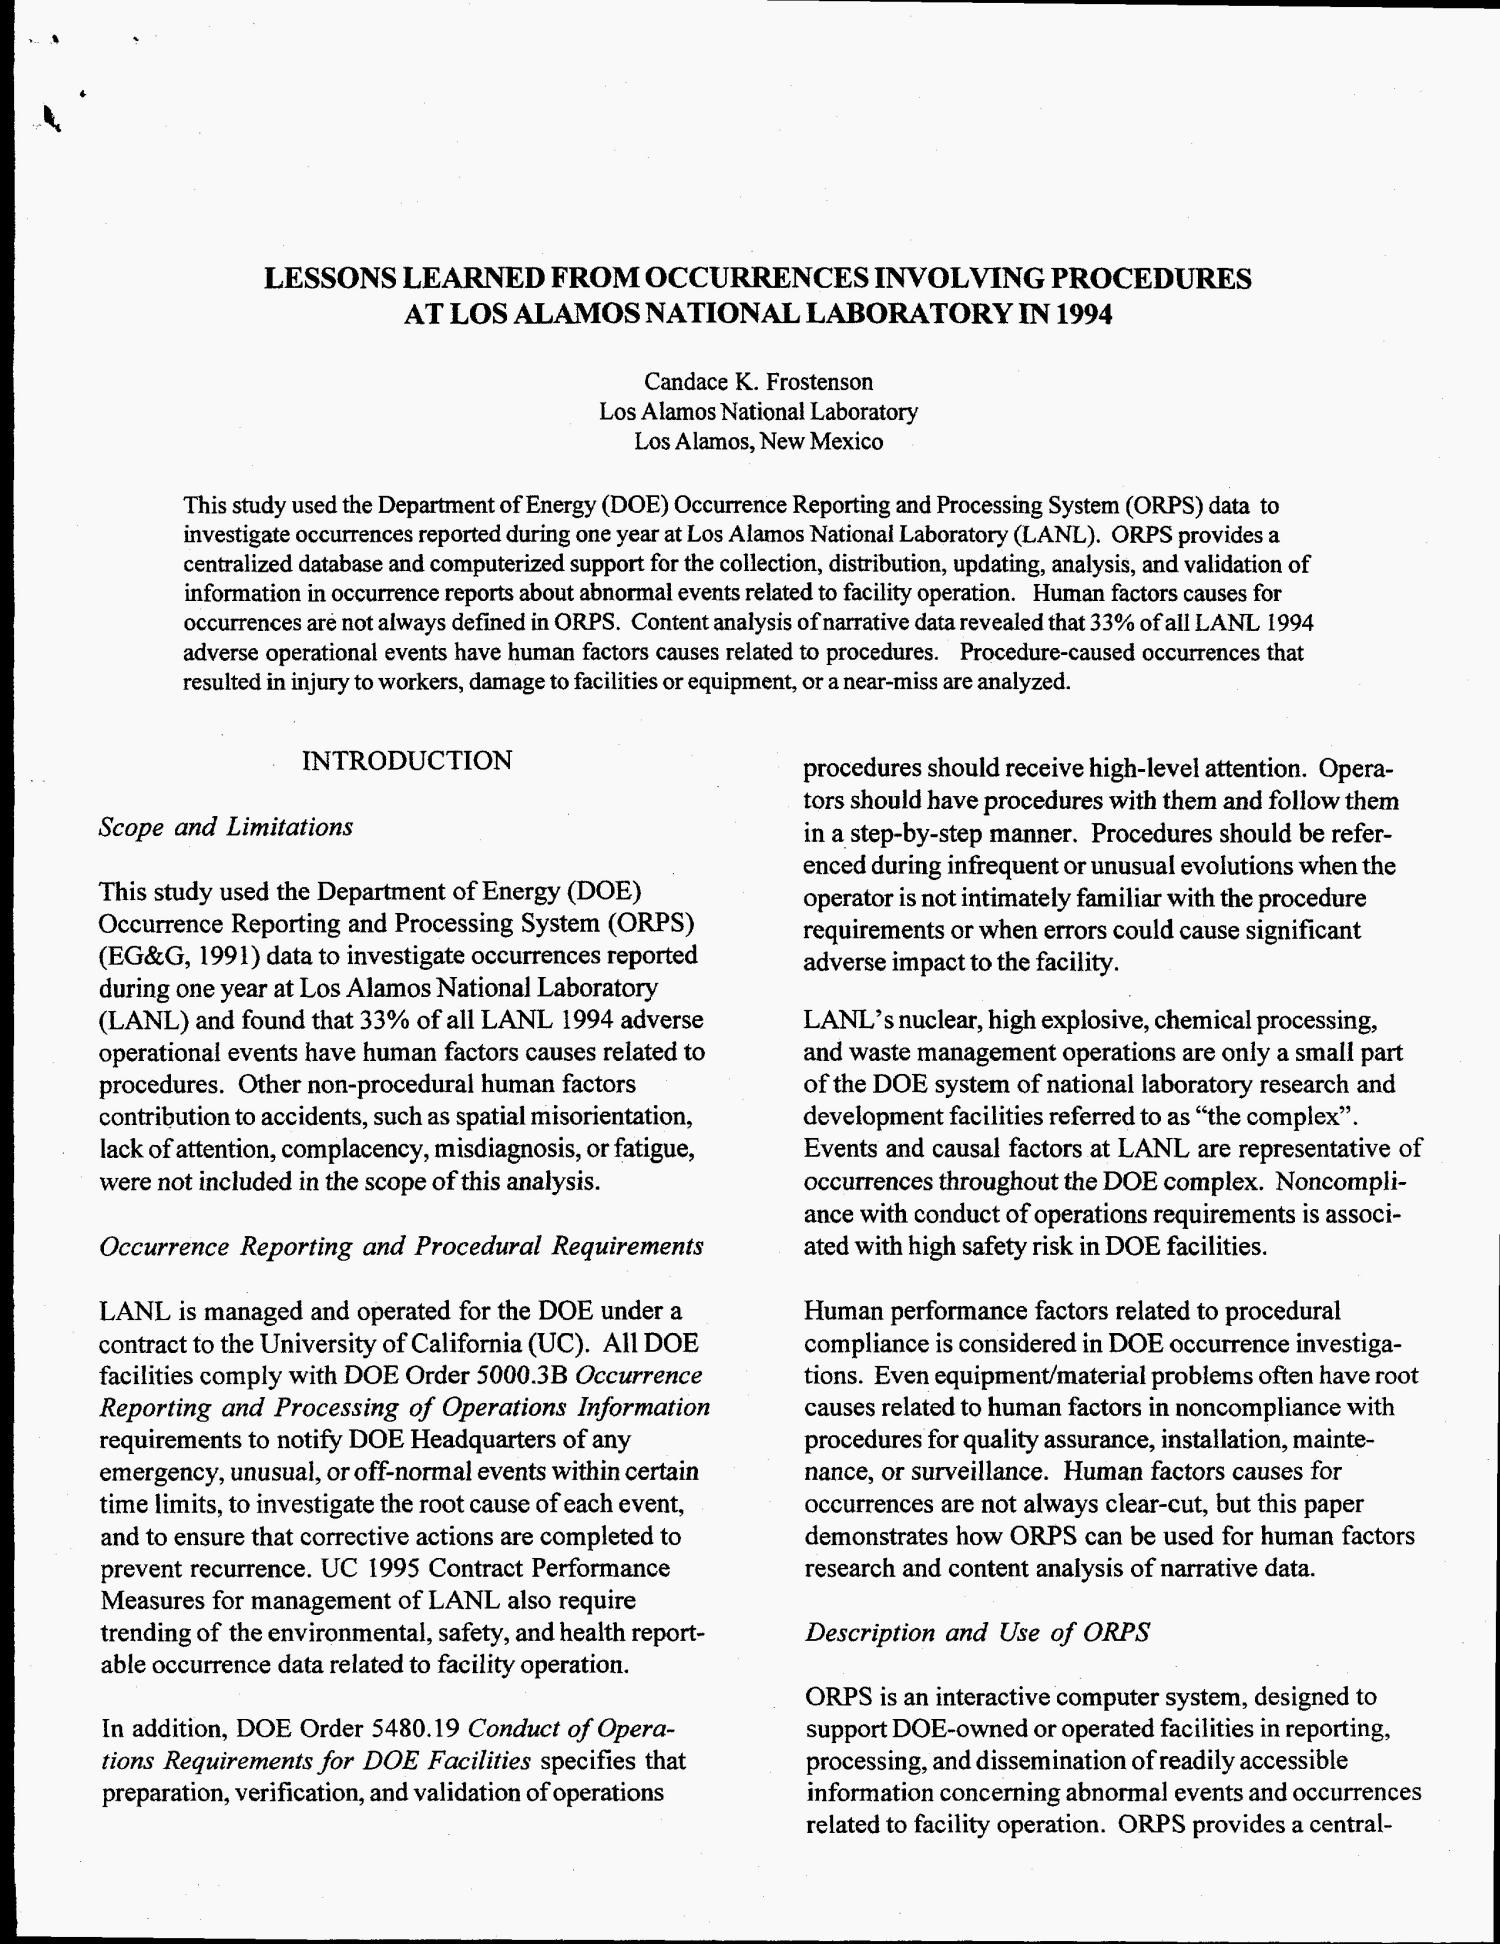 Lessons learned from occurrences involving procedures at Los Alamos National Laboratory in 1994                                                                                                      [Sequence #]: 3 of 7